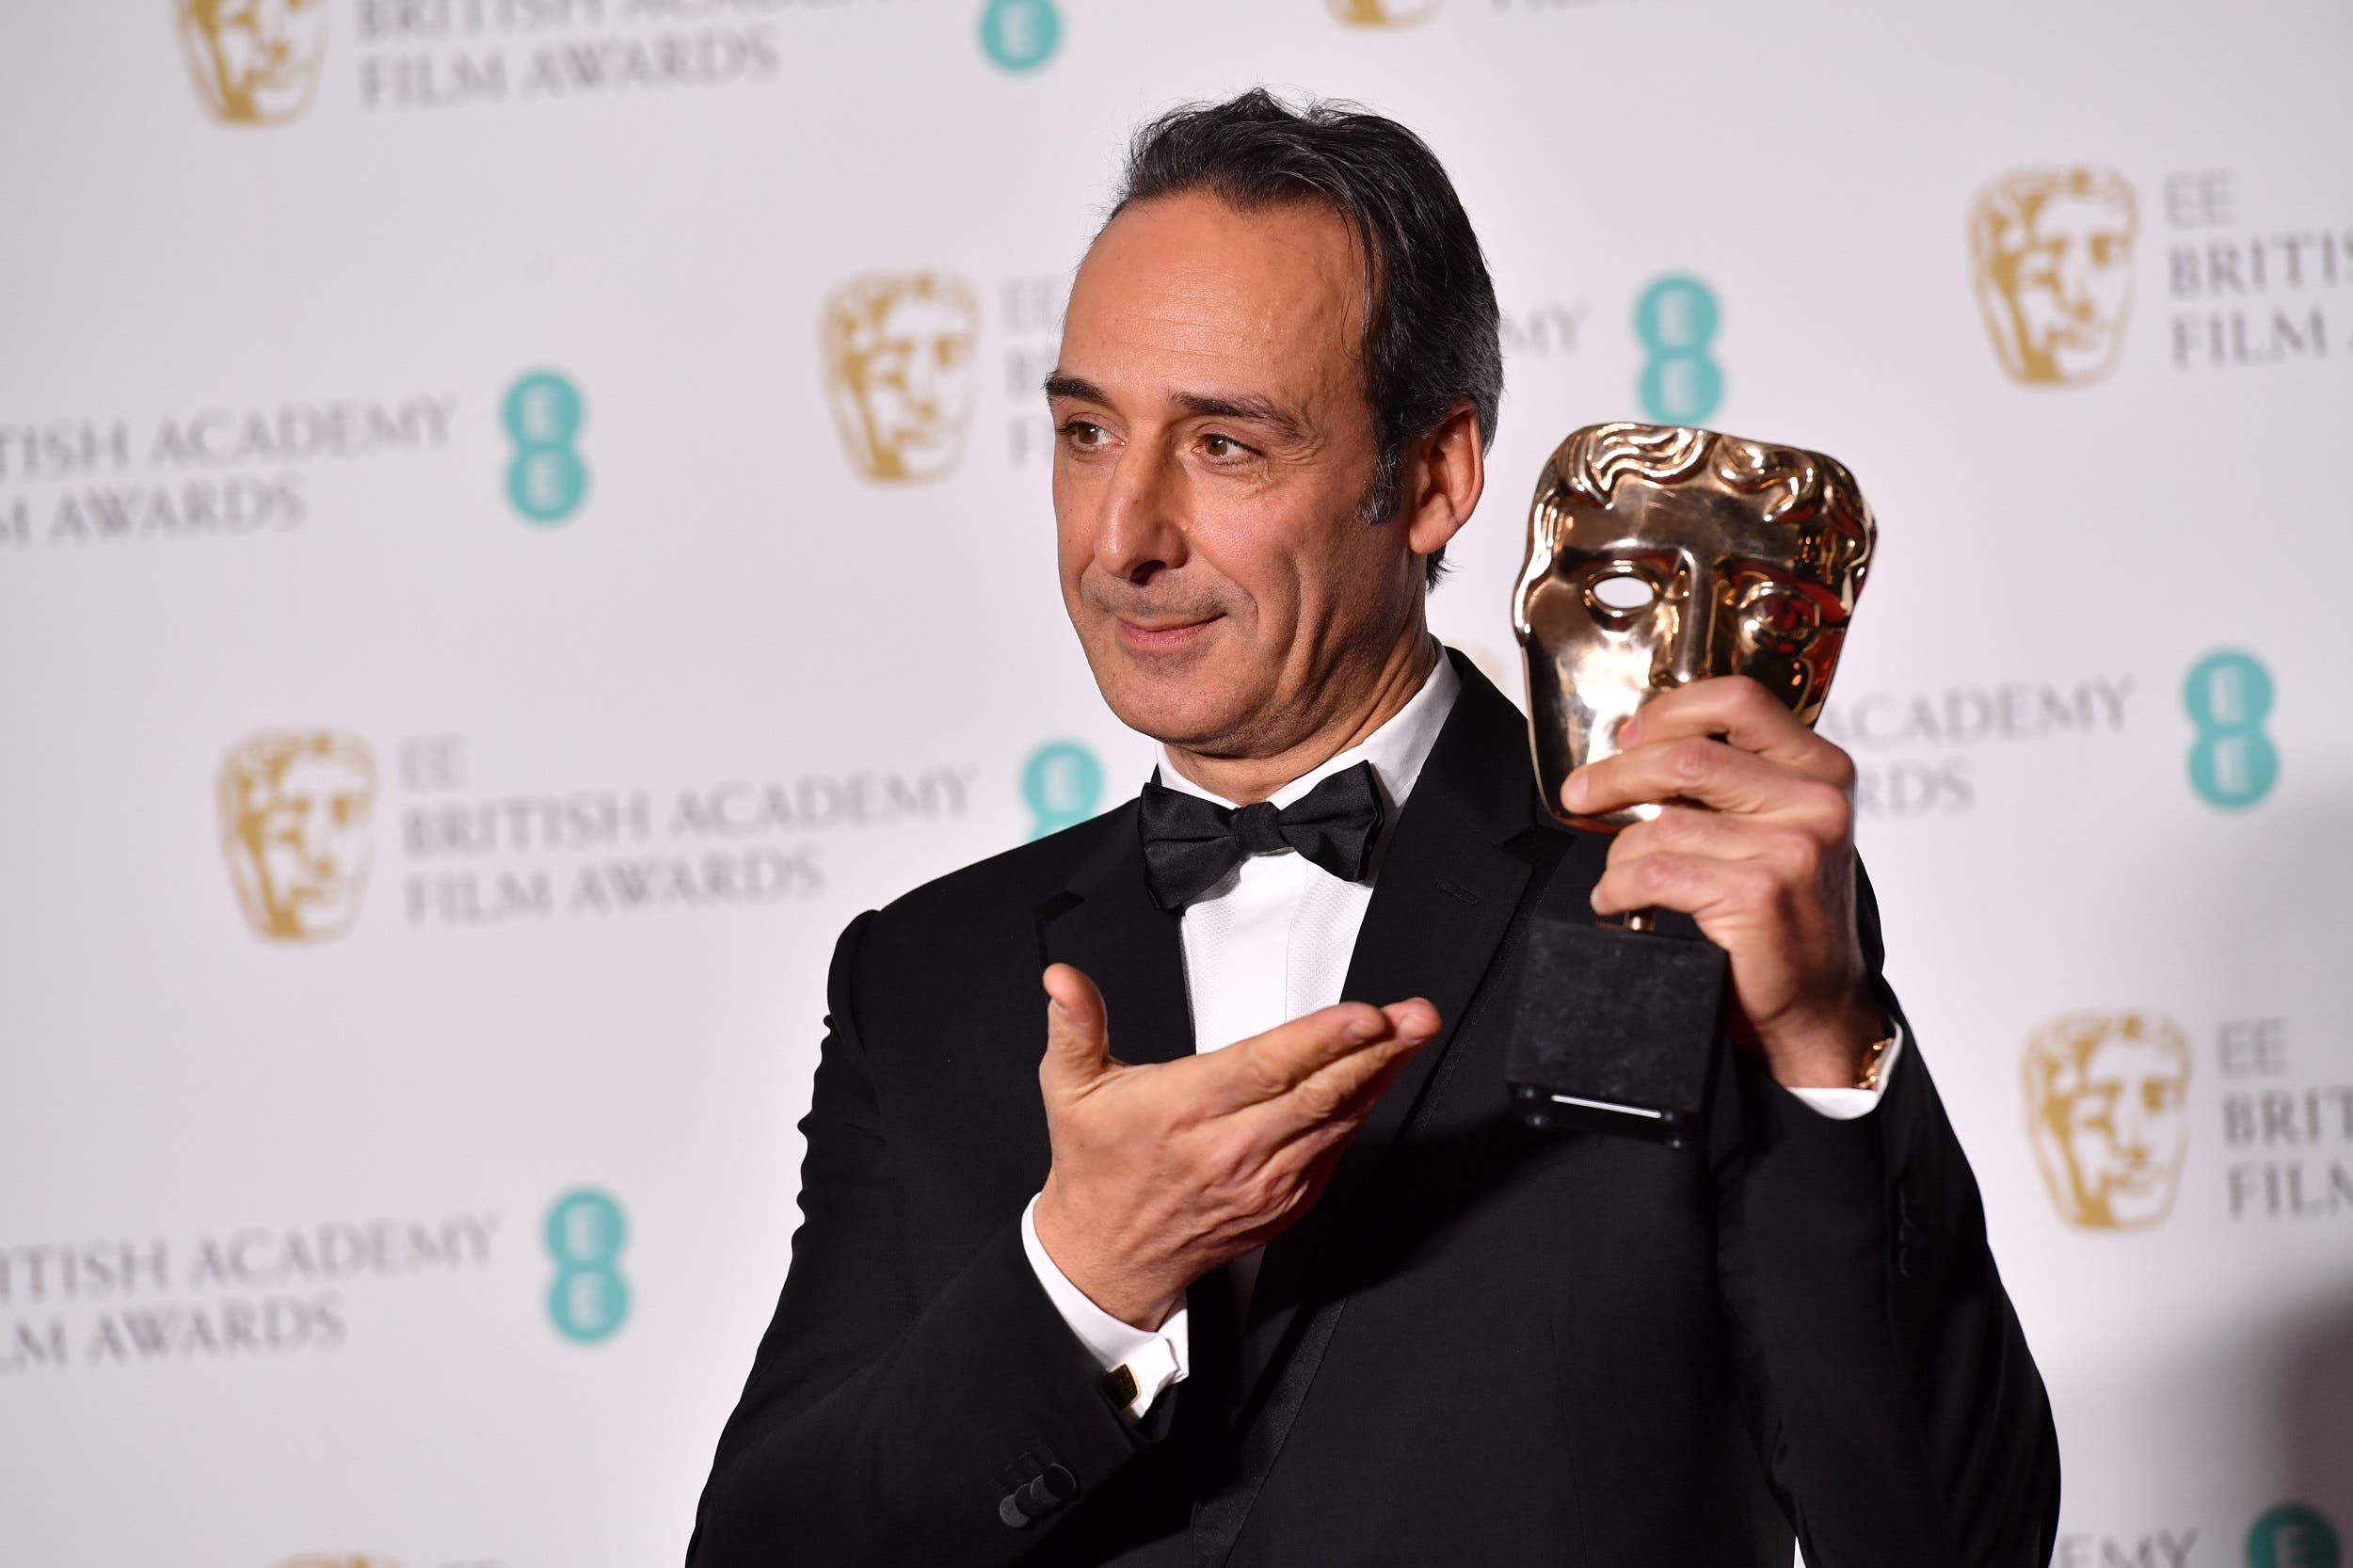 French composer Alexandre Desplat poses with the award for Original Music for The Shape Of Water at BAFTA in London on February 18, 2018. (AFP)